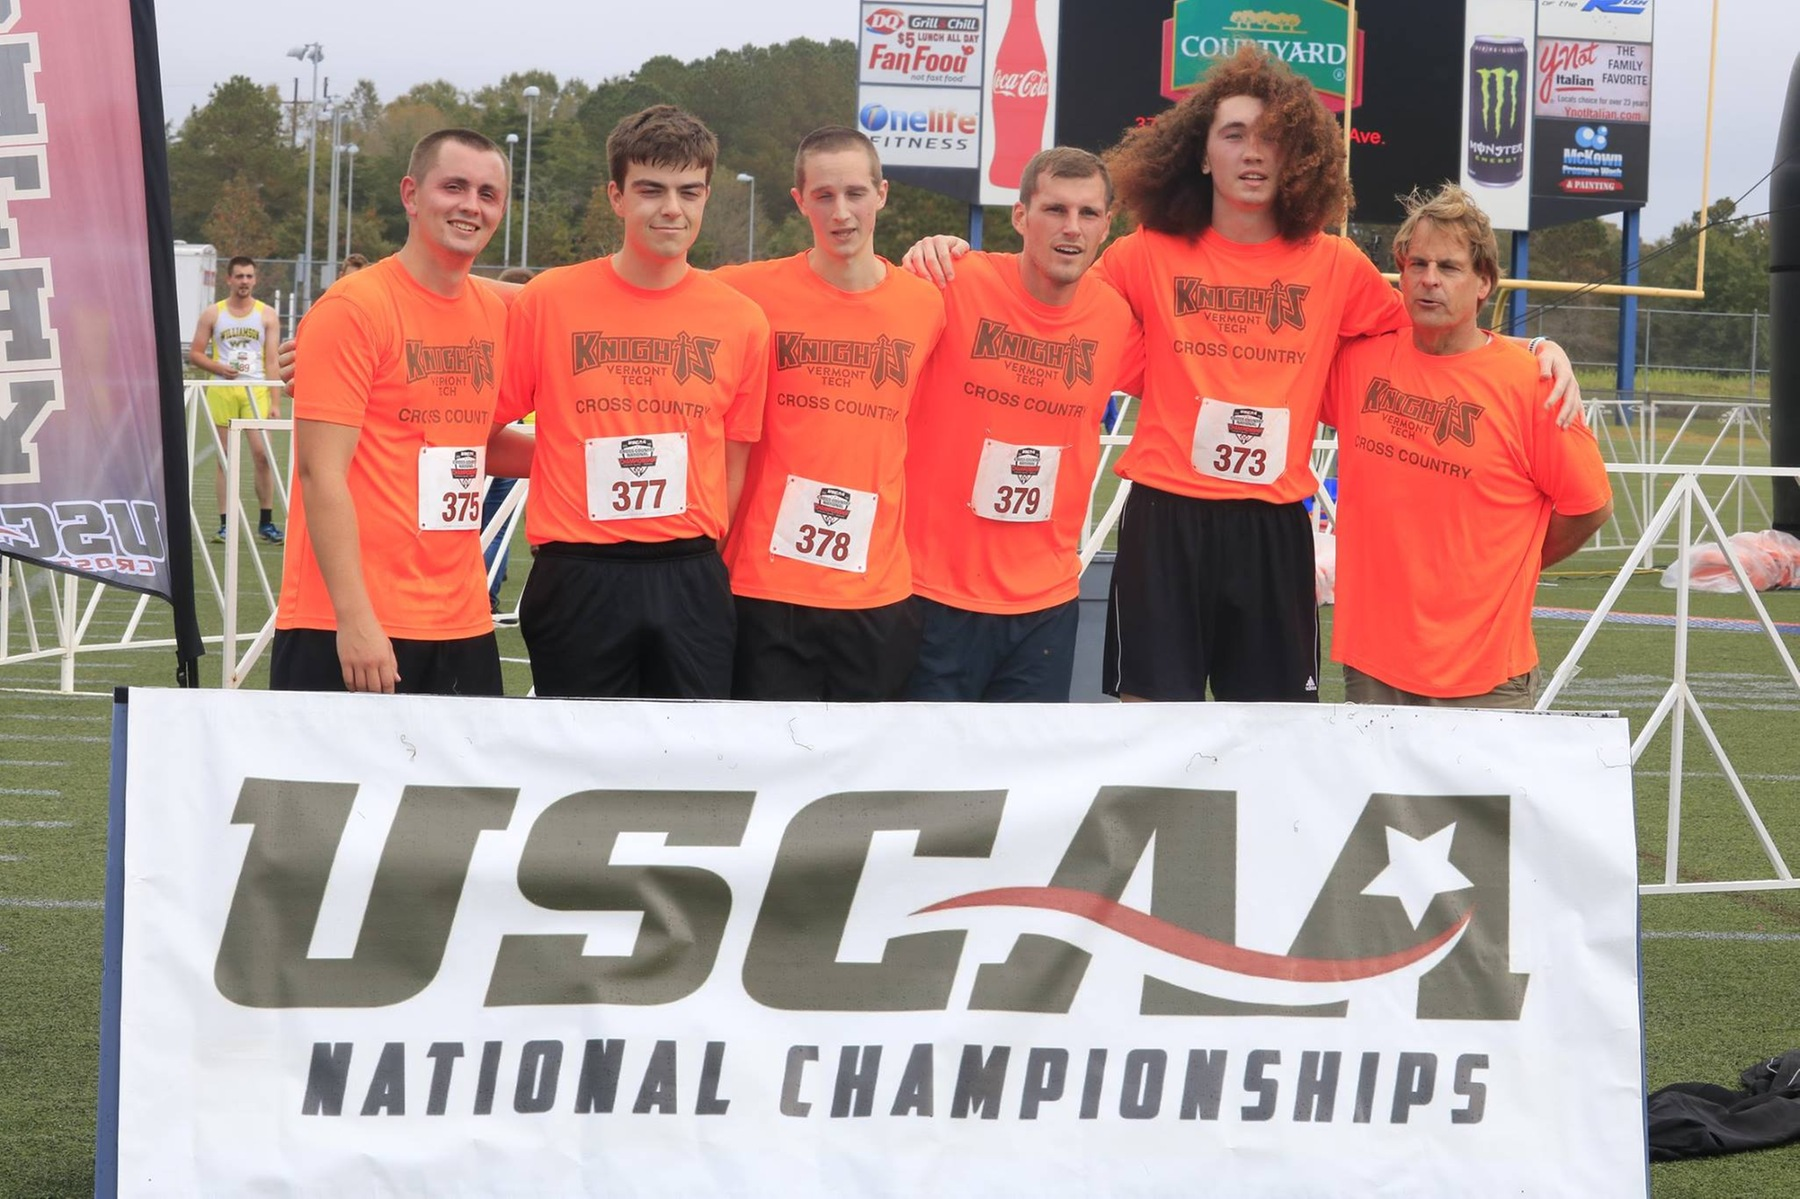 Men's Cross Country competes at USCAA National Championshp